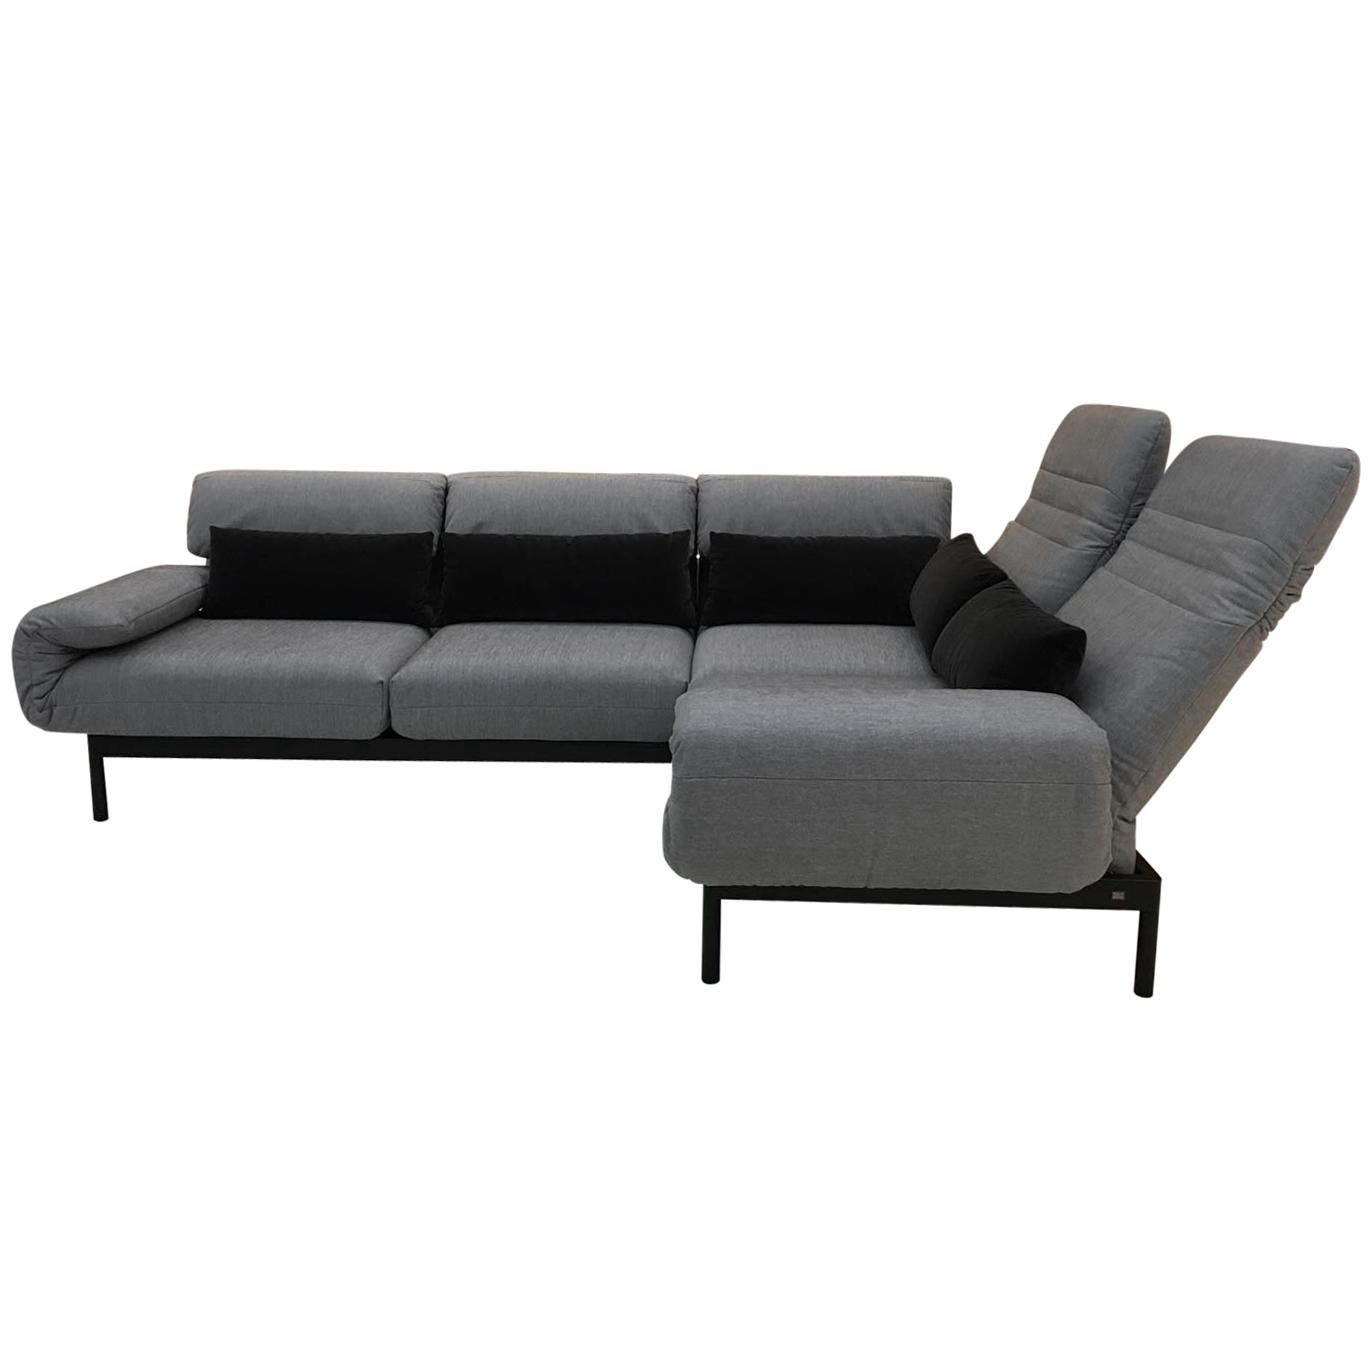 Rolf Benz Sofa 380 Plura 2 Piece Sectional Sofa In Grey Fabric Black Steel Frame With Recline Function